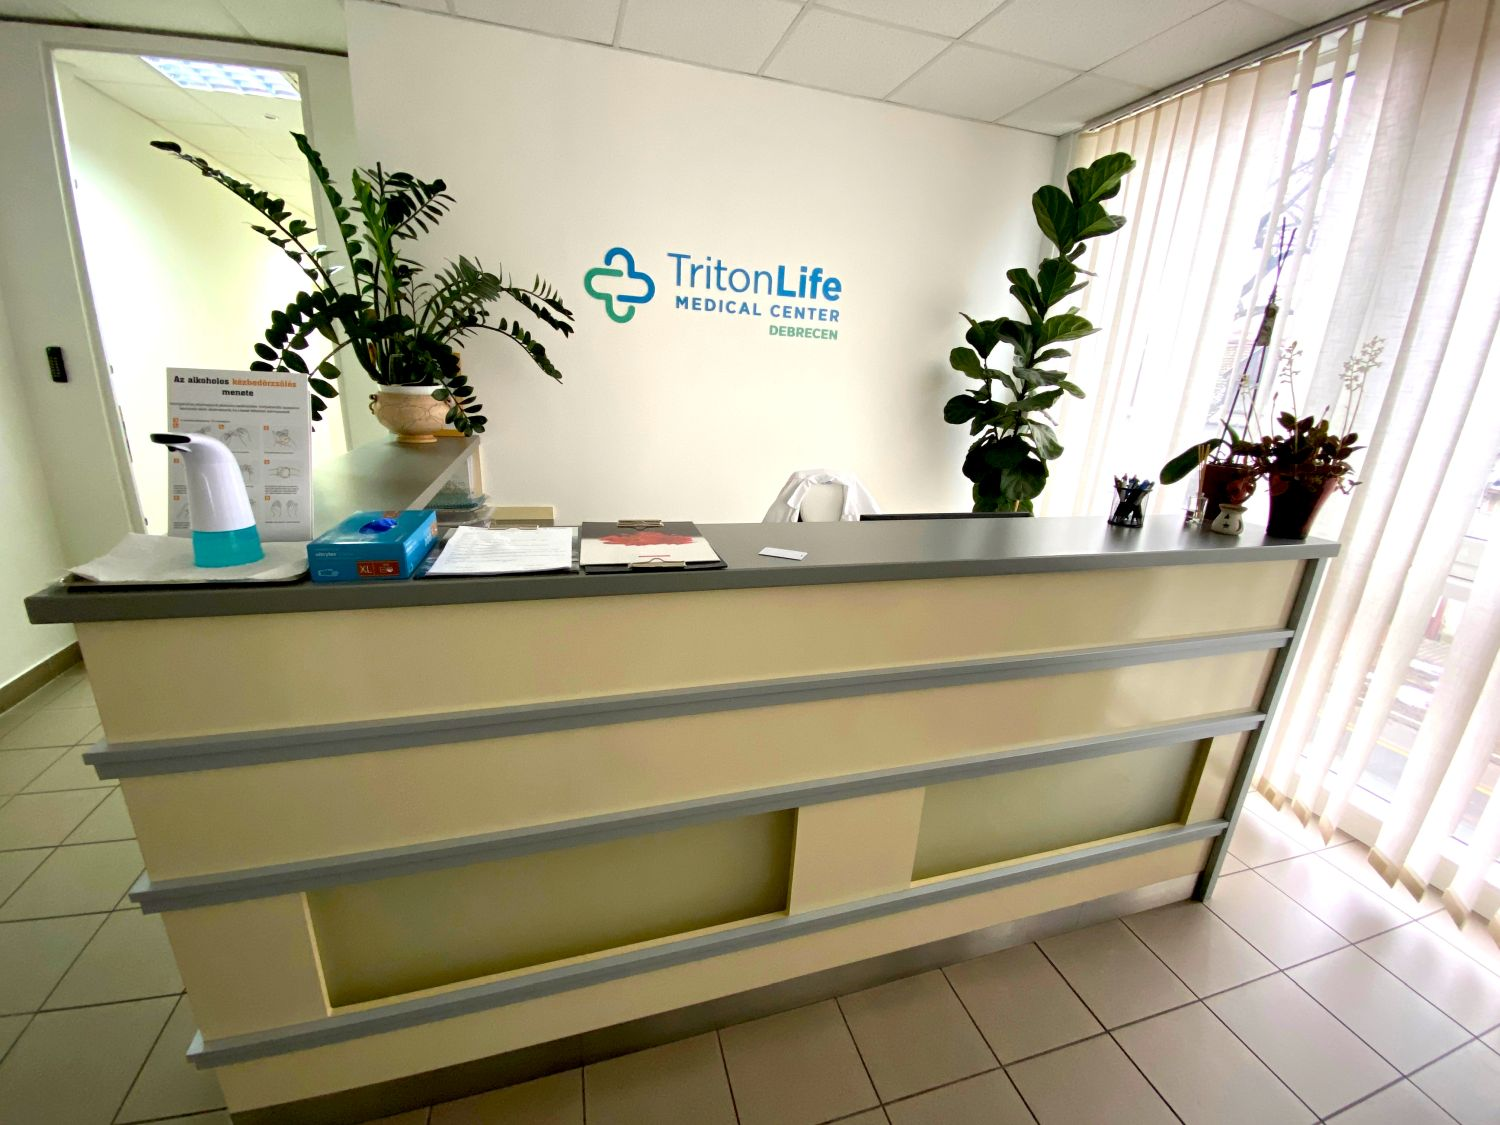 TritonLife Medical Center Debrecen